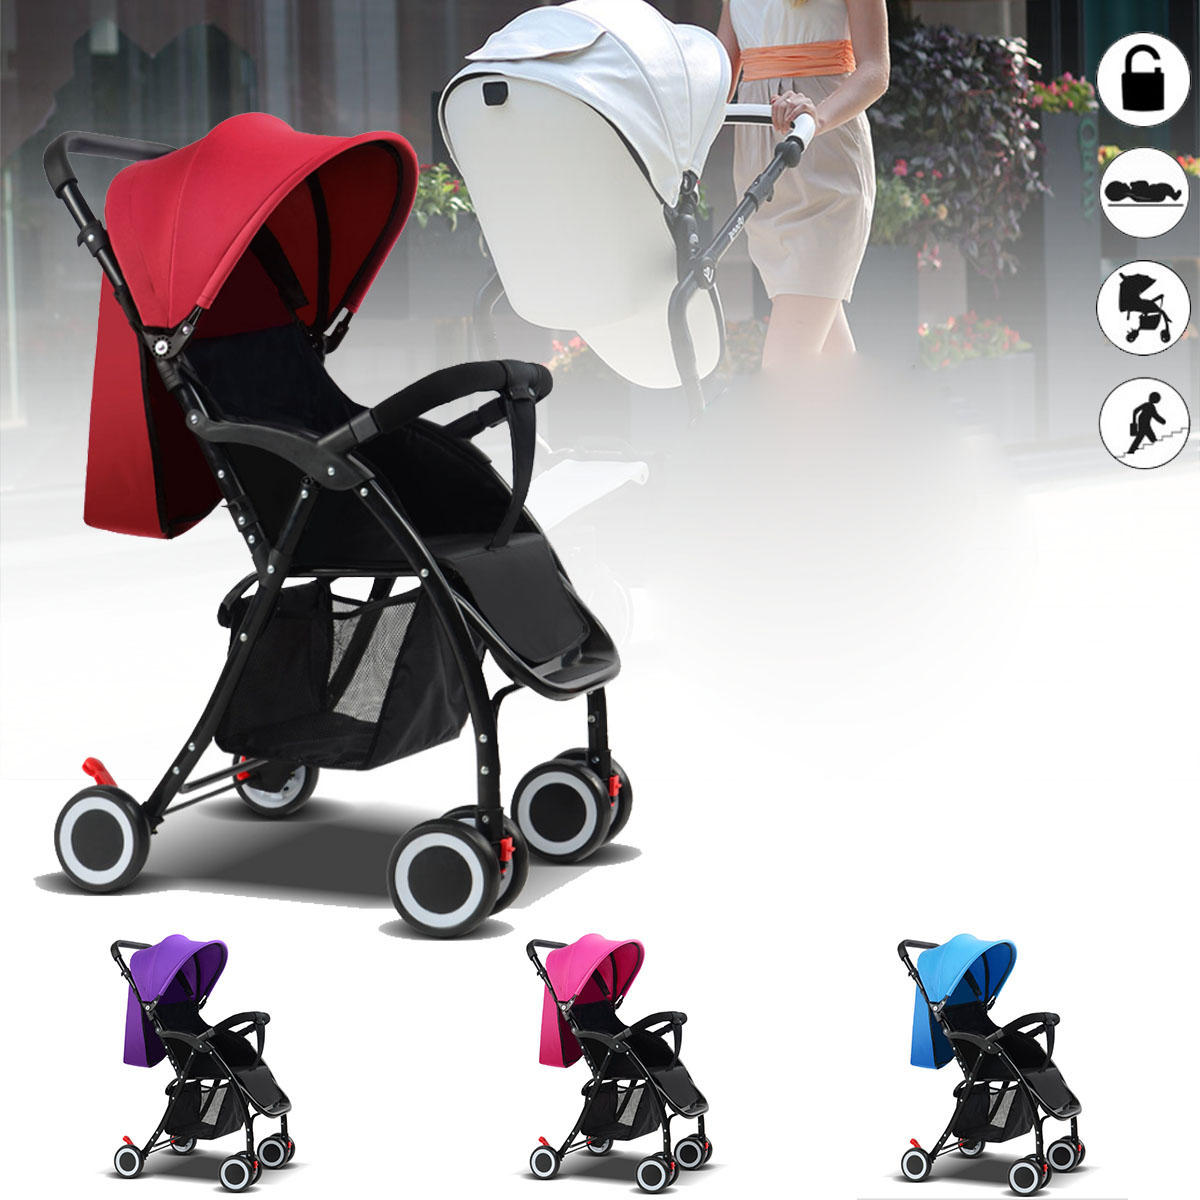 Pram Stroller India Foldable Baby Kids Travel Stroller Newborn Infant Pushchair Buggy Pram Lightweight Baby Carriage